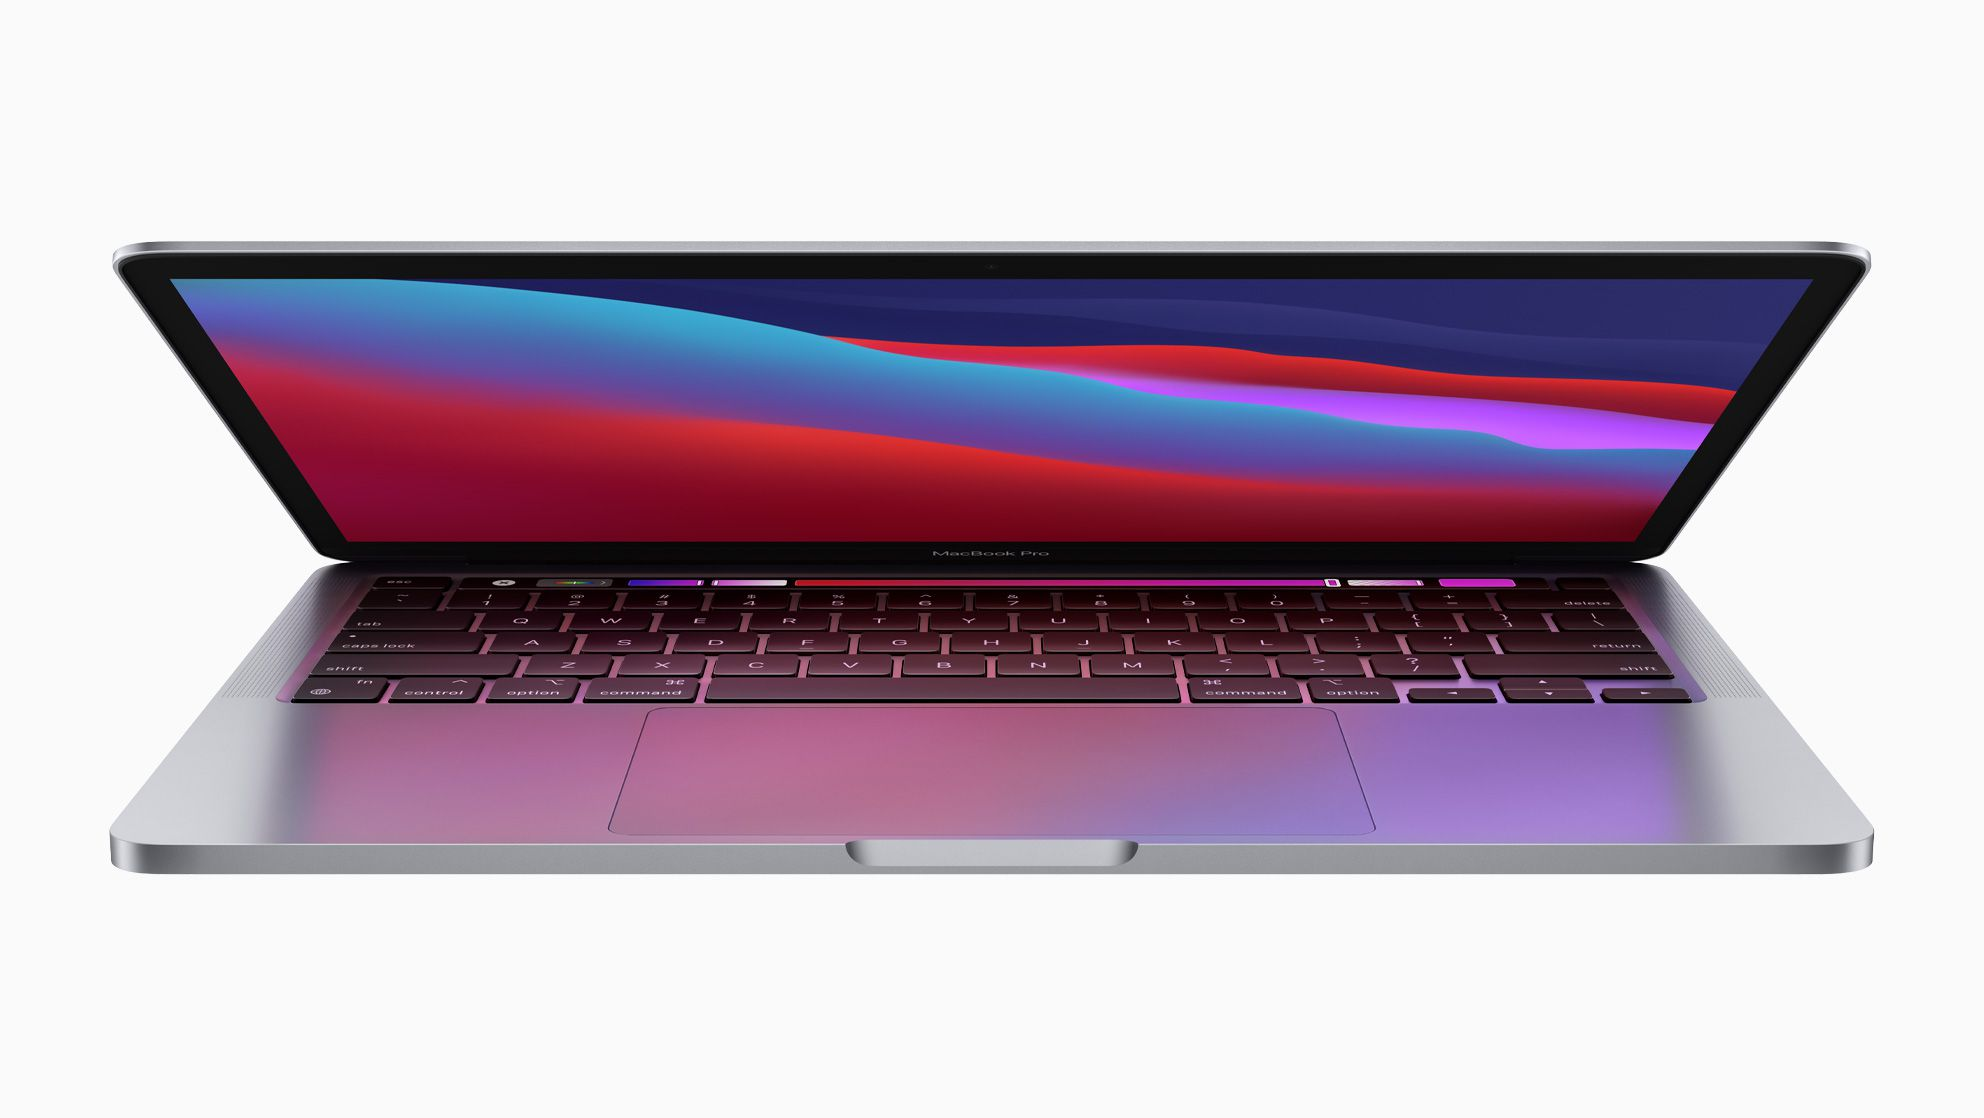 Apple MacBook Pro with the new Apple M1 chip